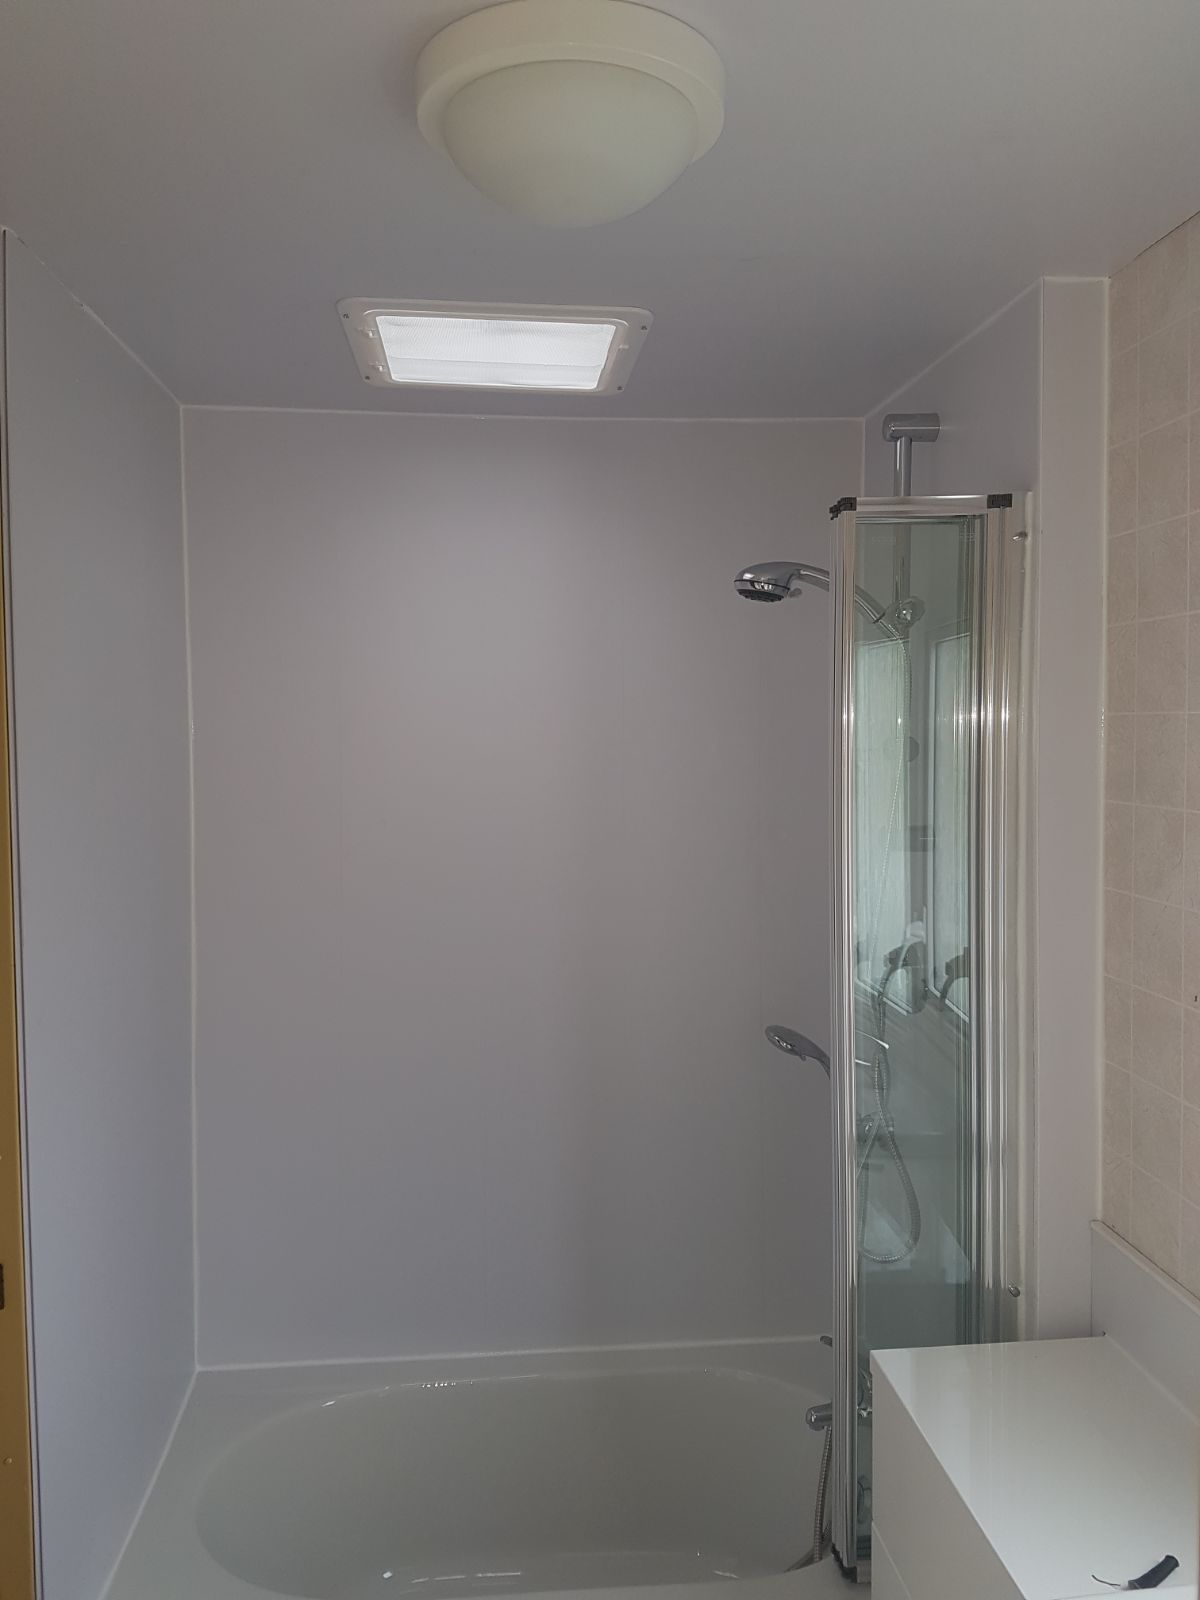 wall cladding in shower area